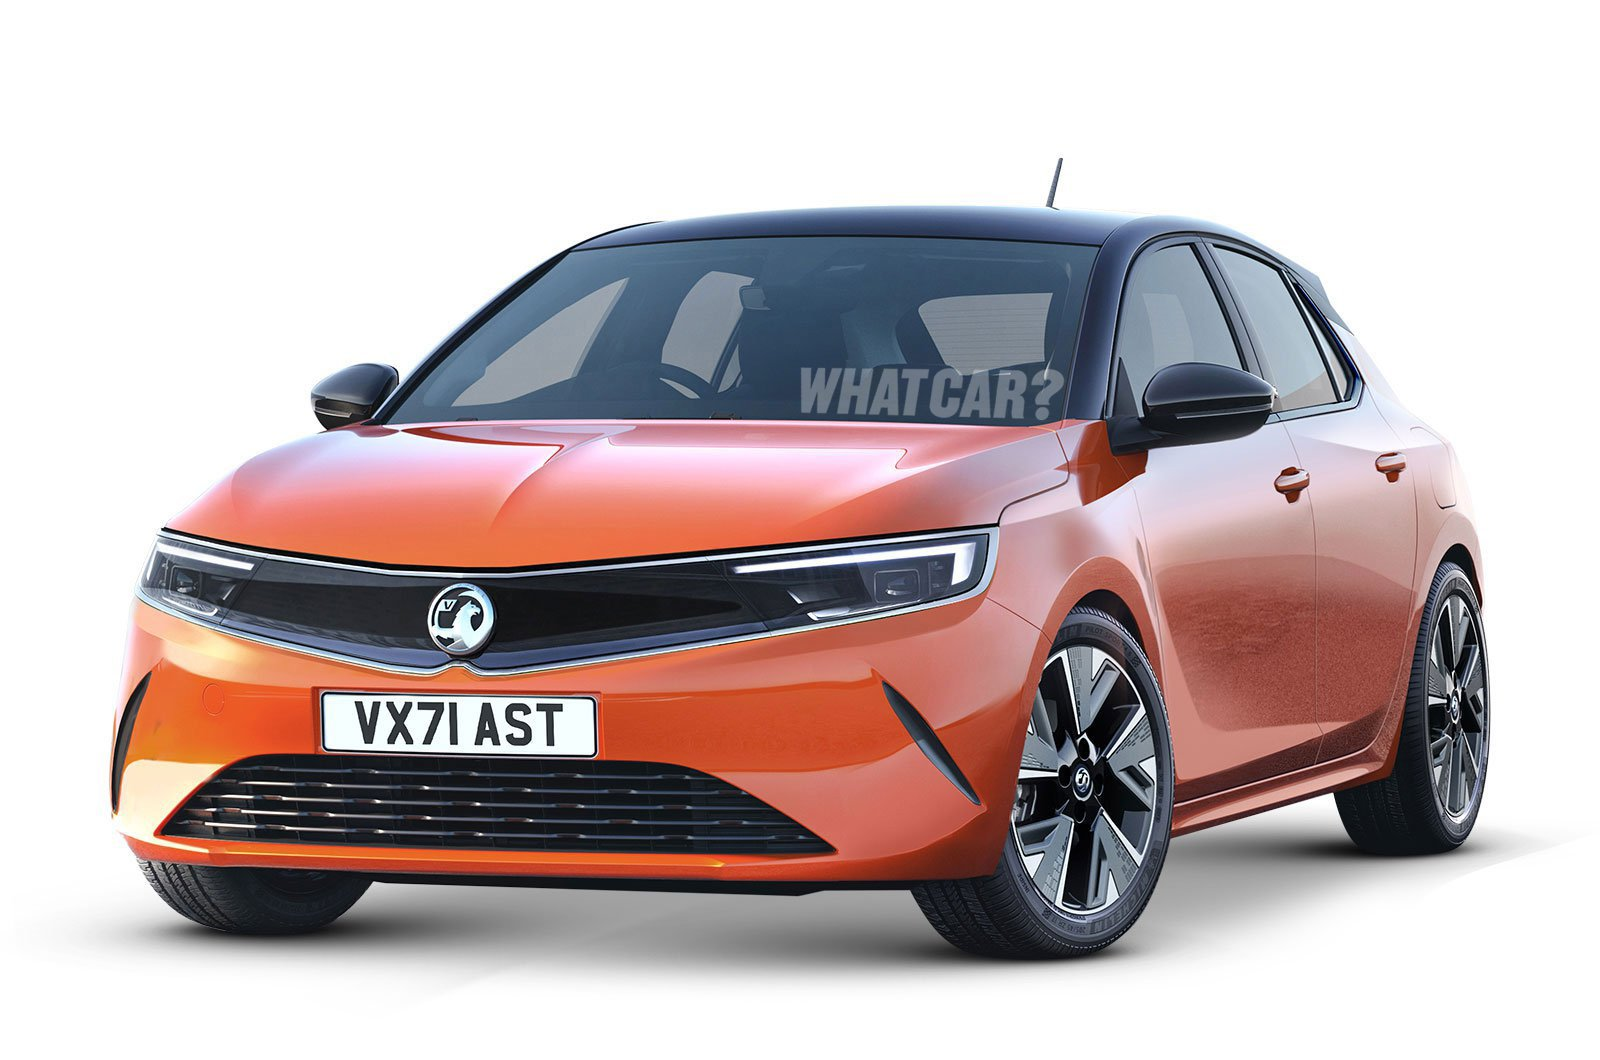 2021 Vauxhall Astra render with watermark